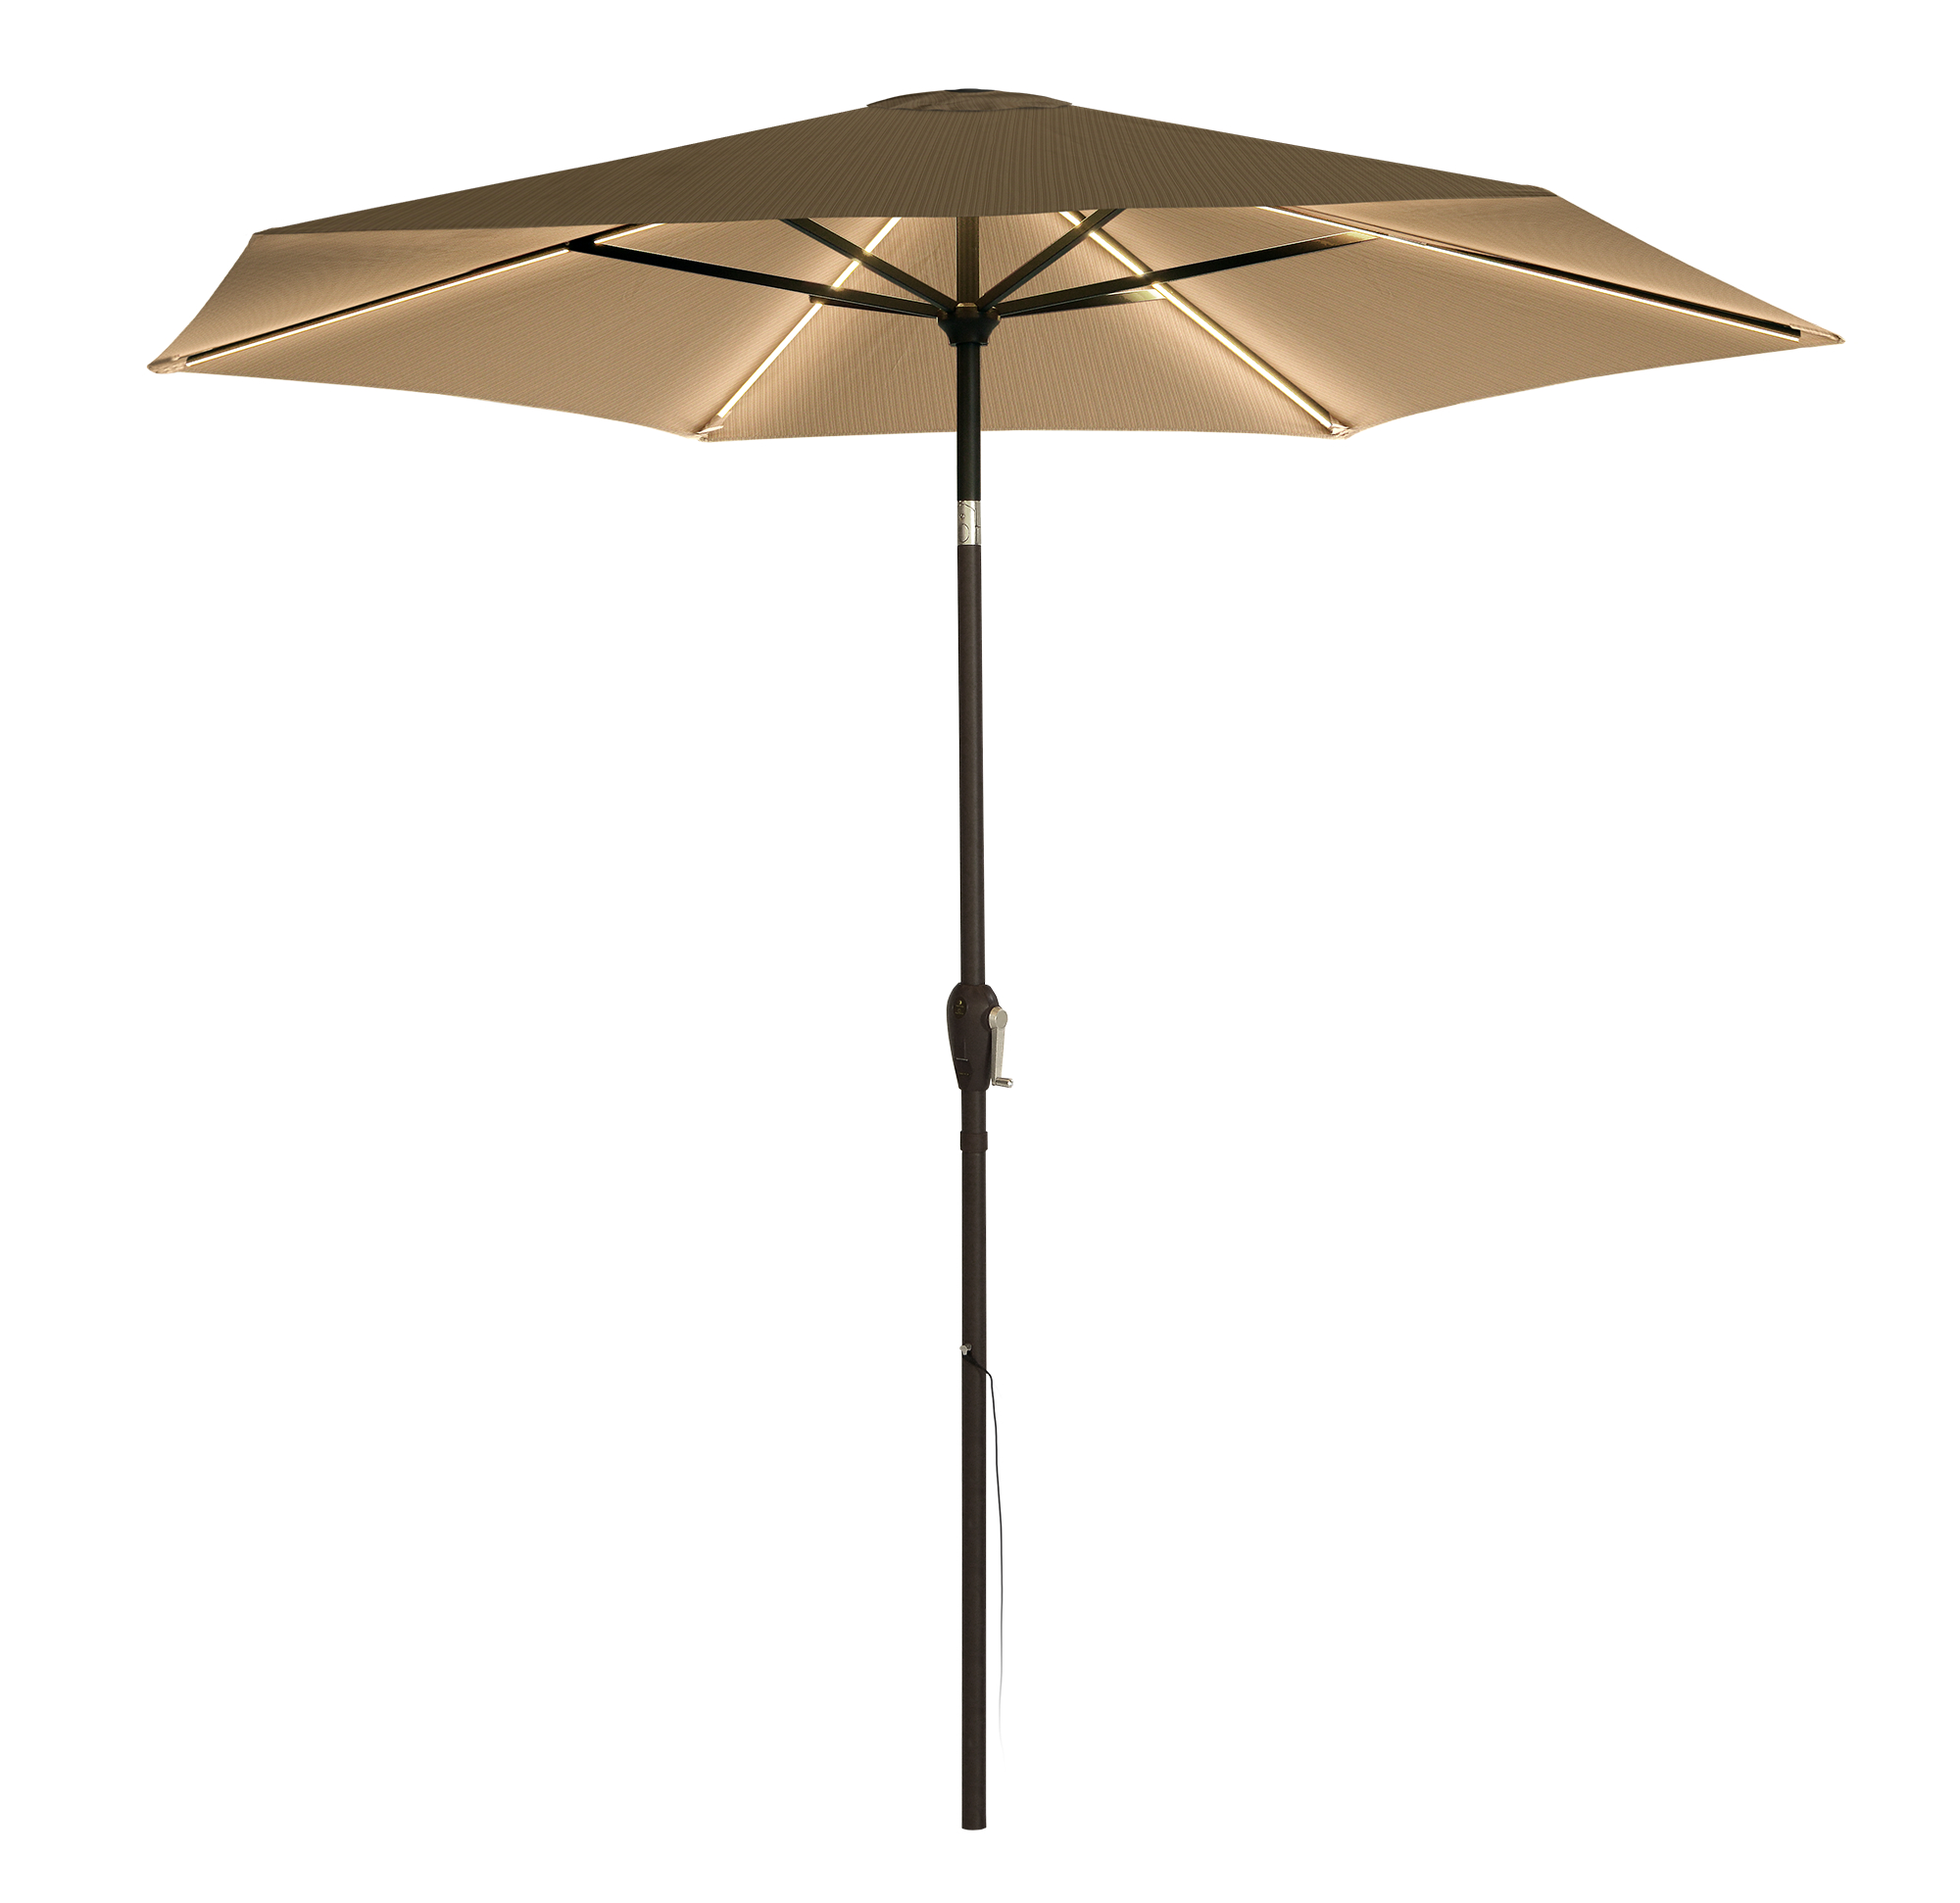 QS 9' UMBRELLA WARM WHITE, KHAKI COVER